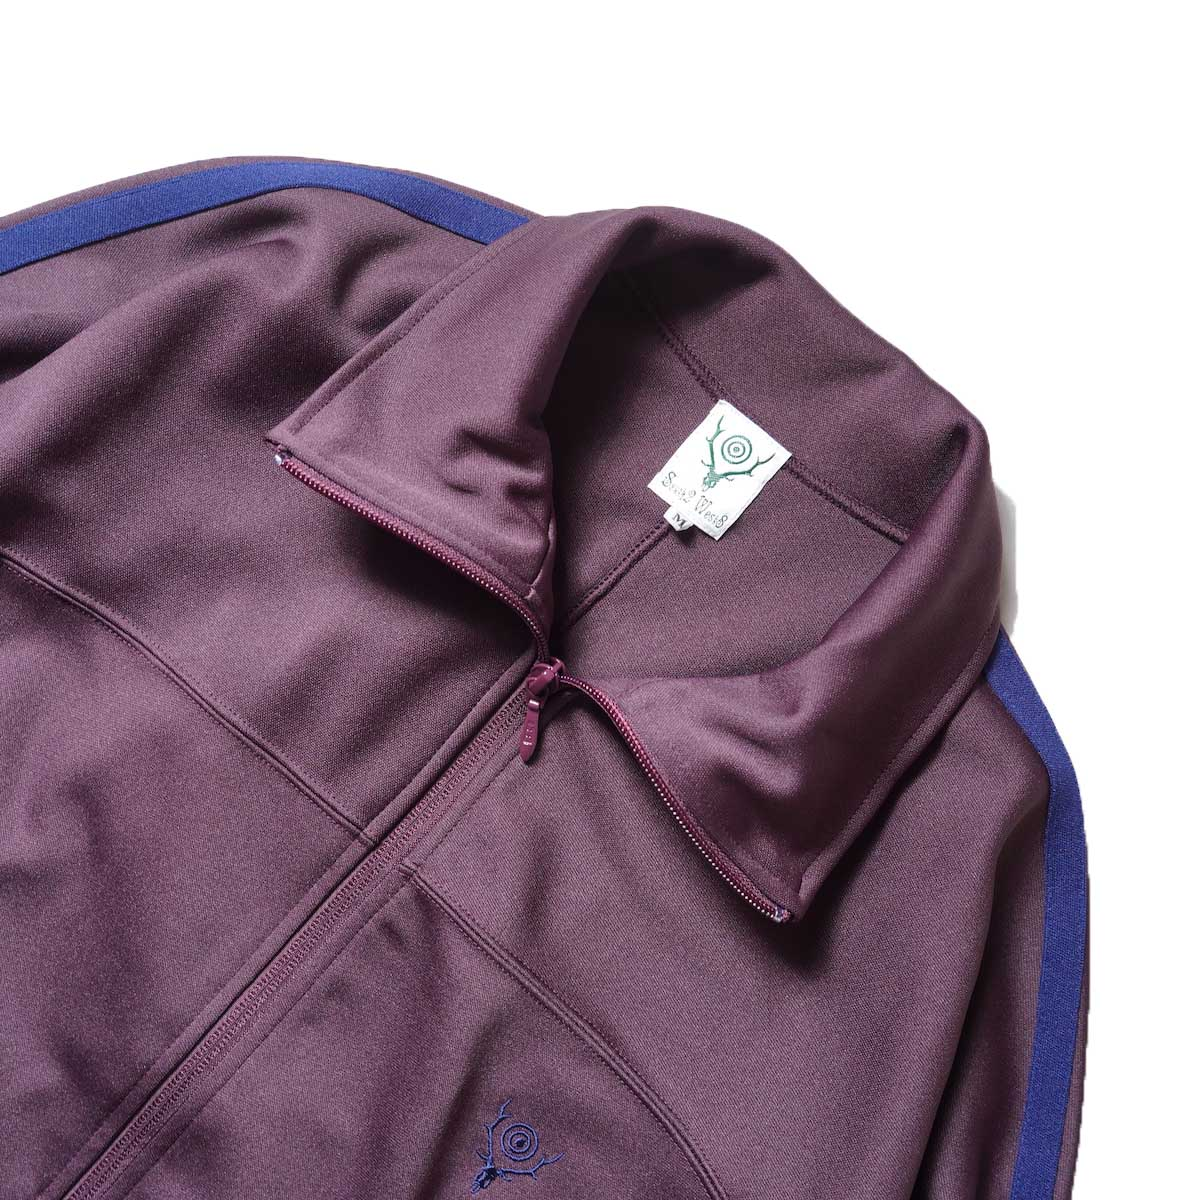 South2 West8 / Trainer jacket - Poly Smooth (Burgundy)襟